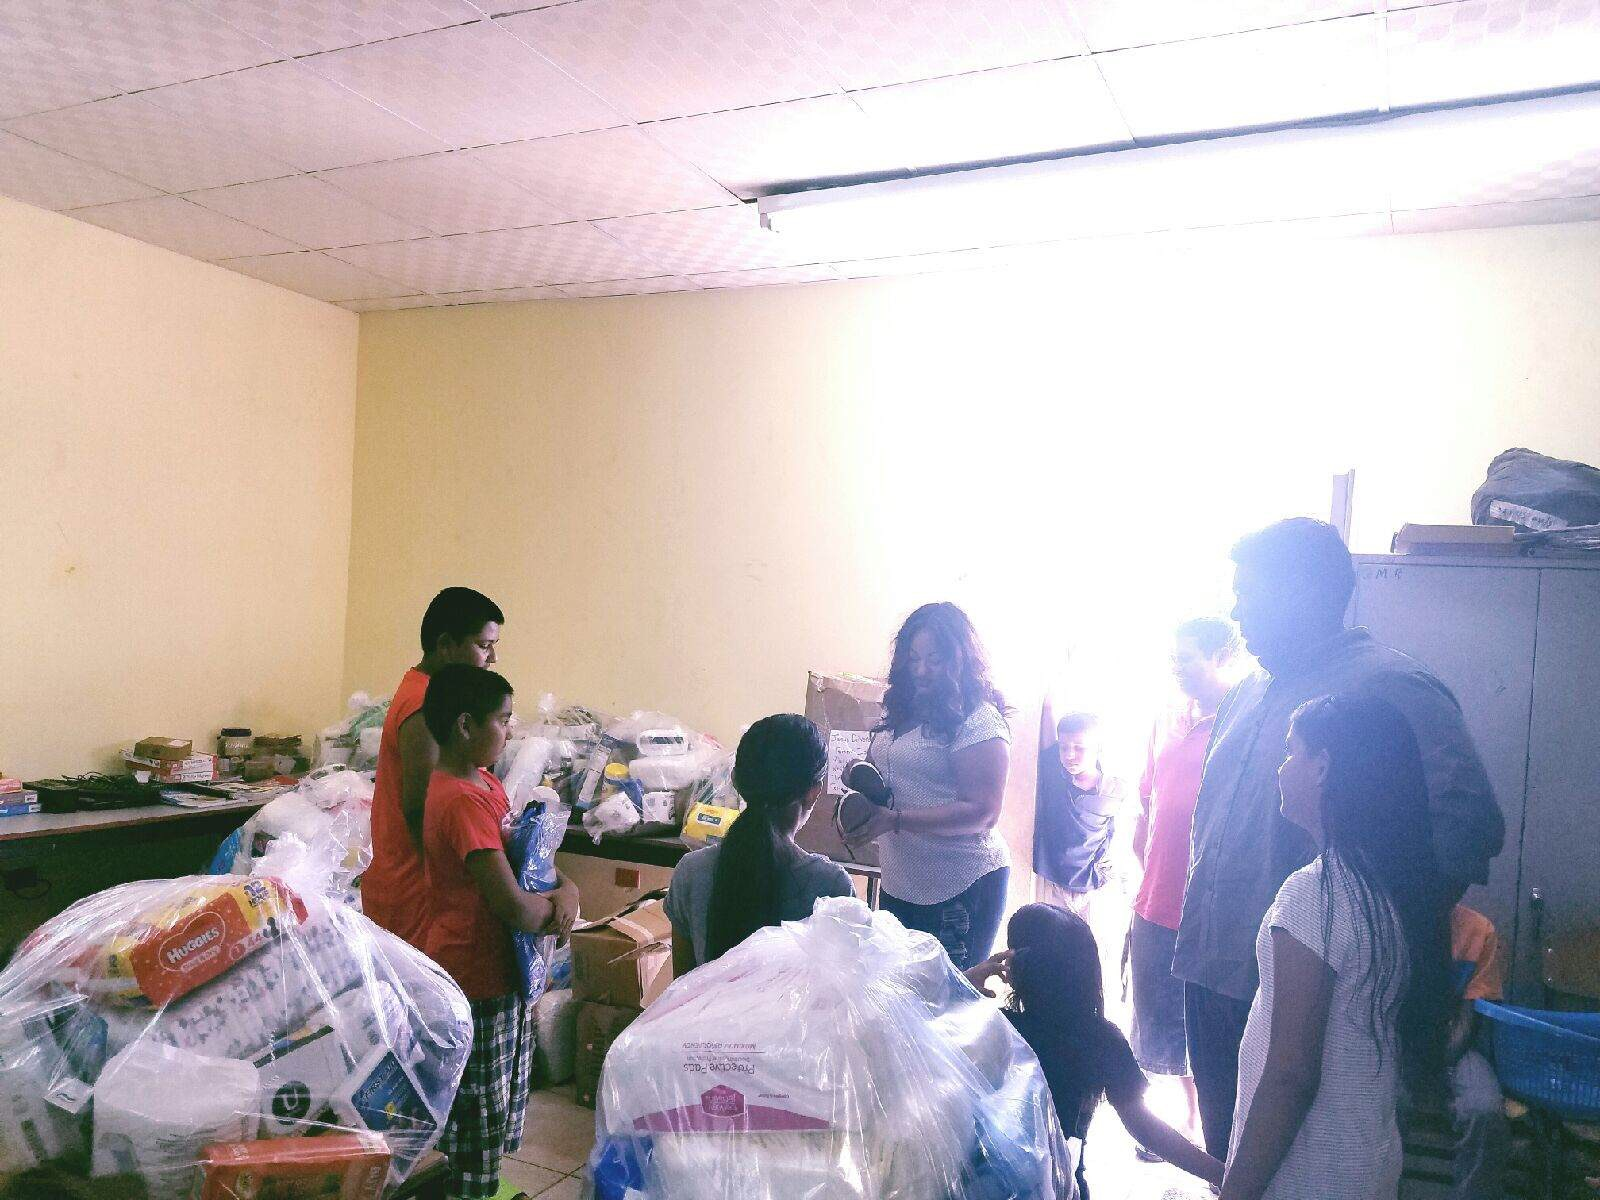 Trinidad Relief Efforts in conjunction with Pastor Tommy Ishamel at the Las Lomas Elementary School.